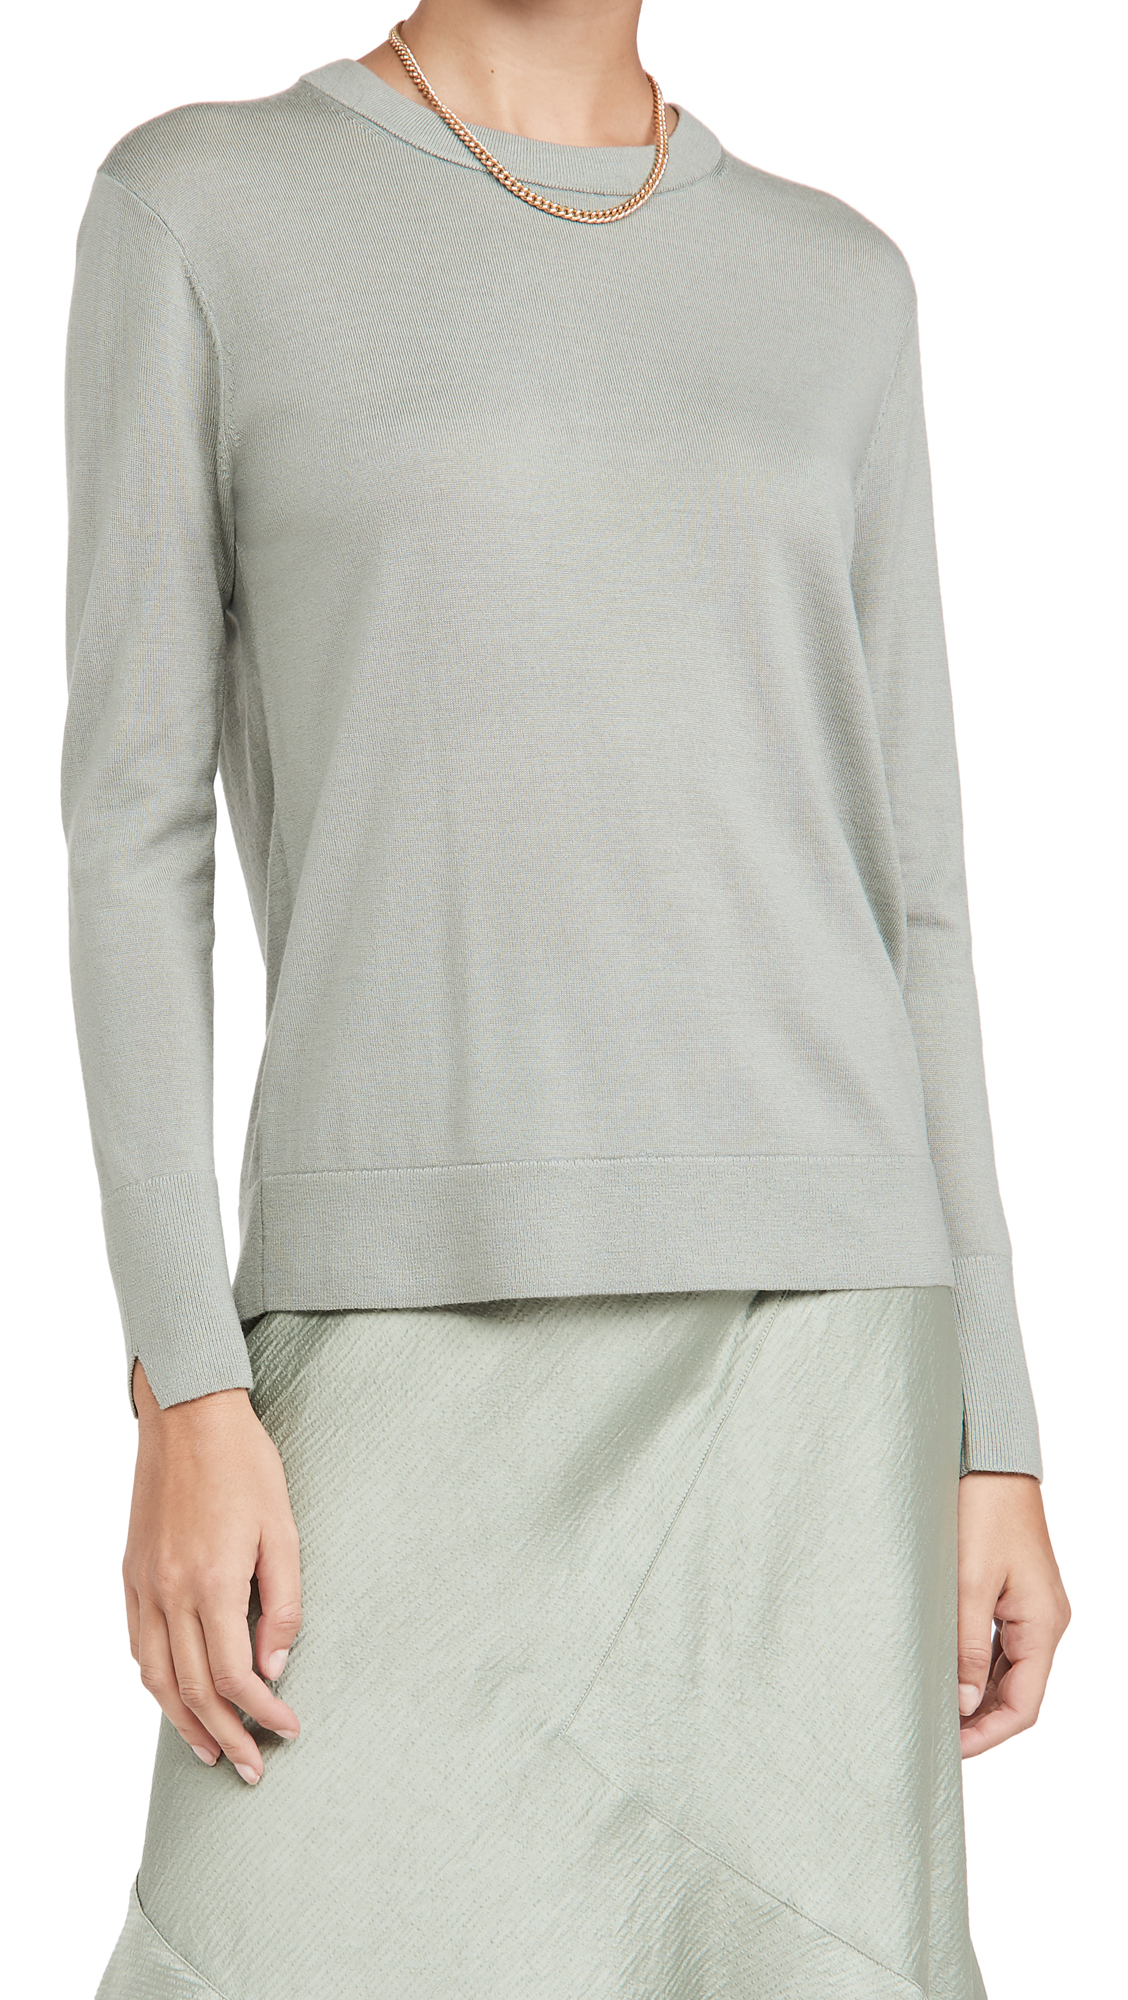 Club Monaco Essential Crewneck Sweater